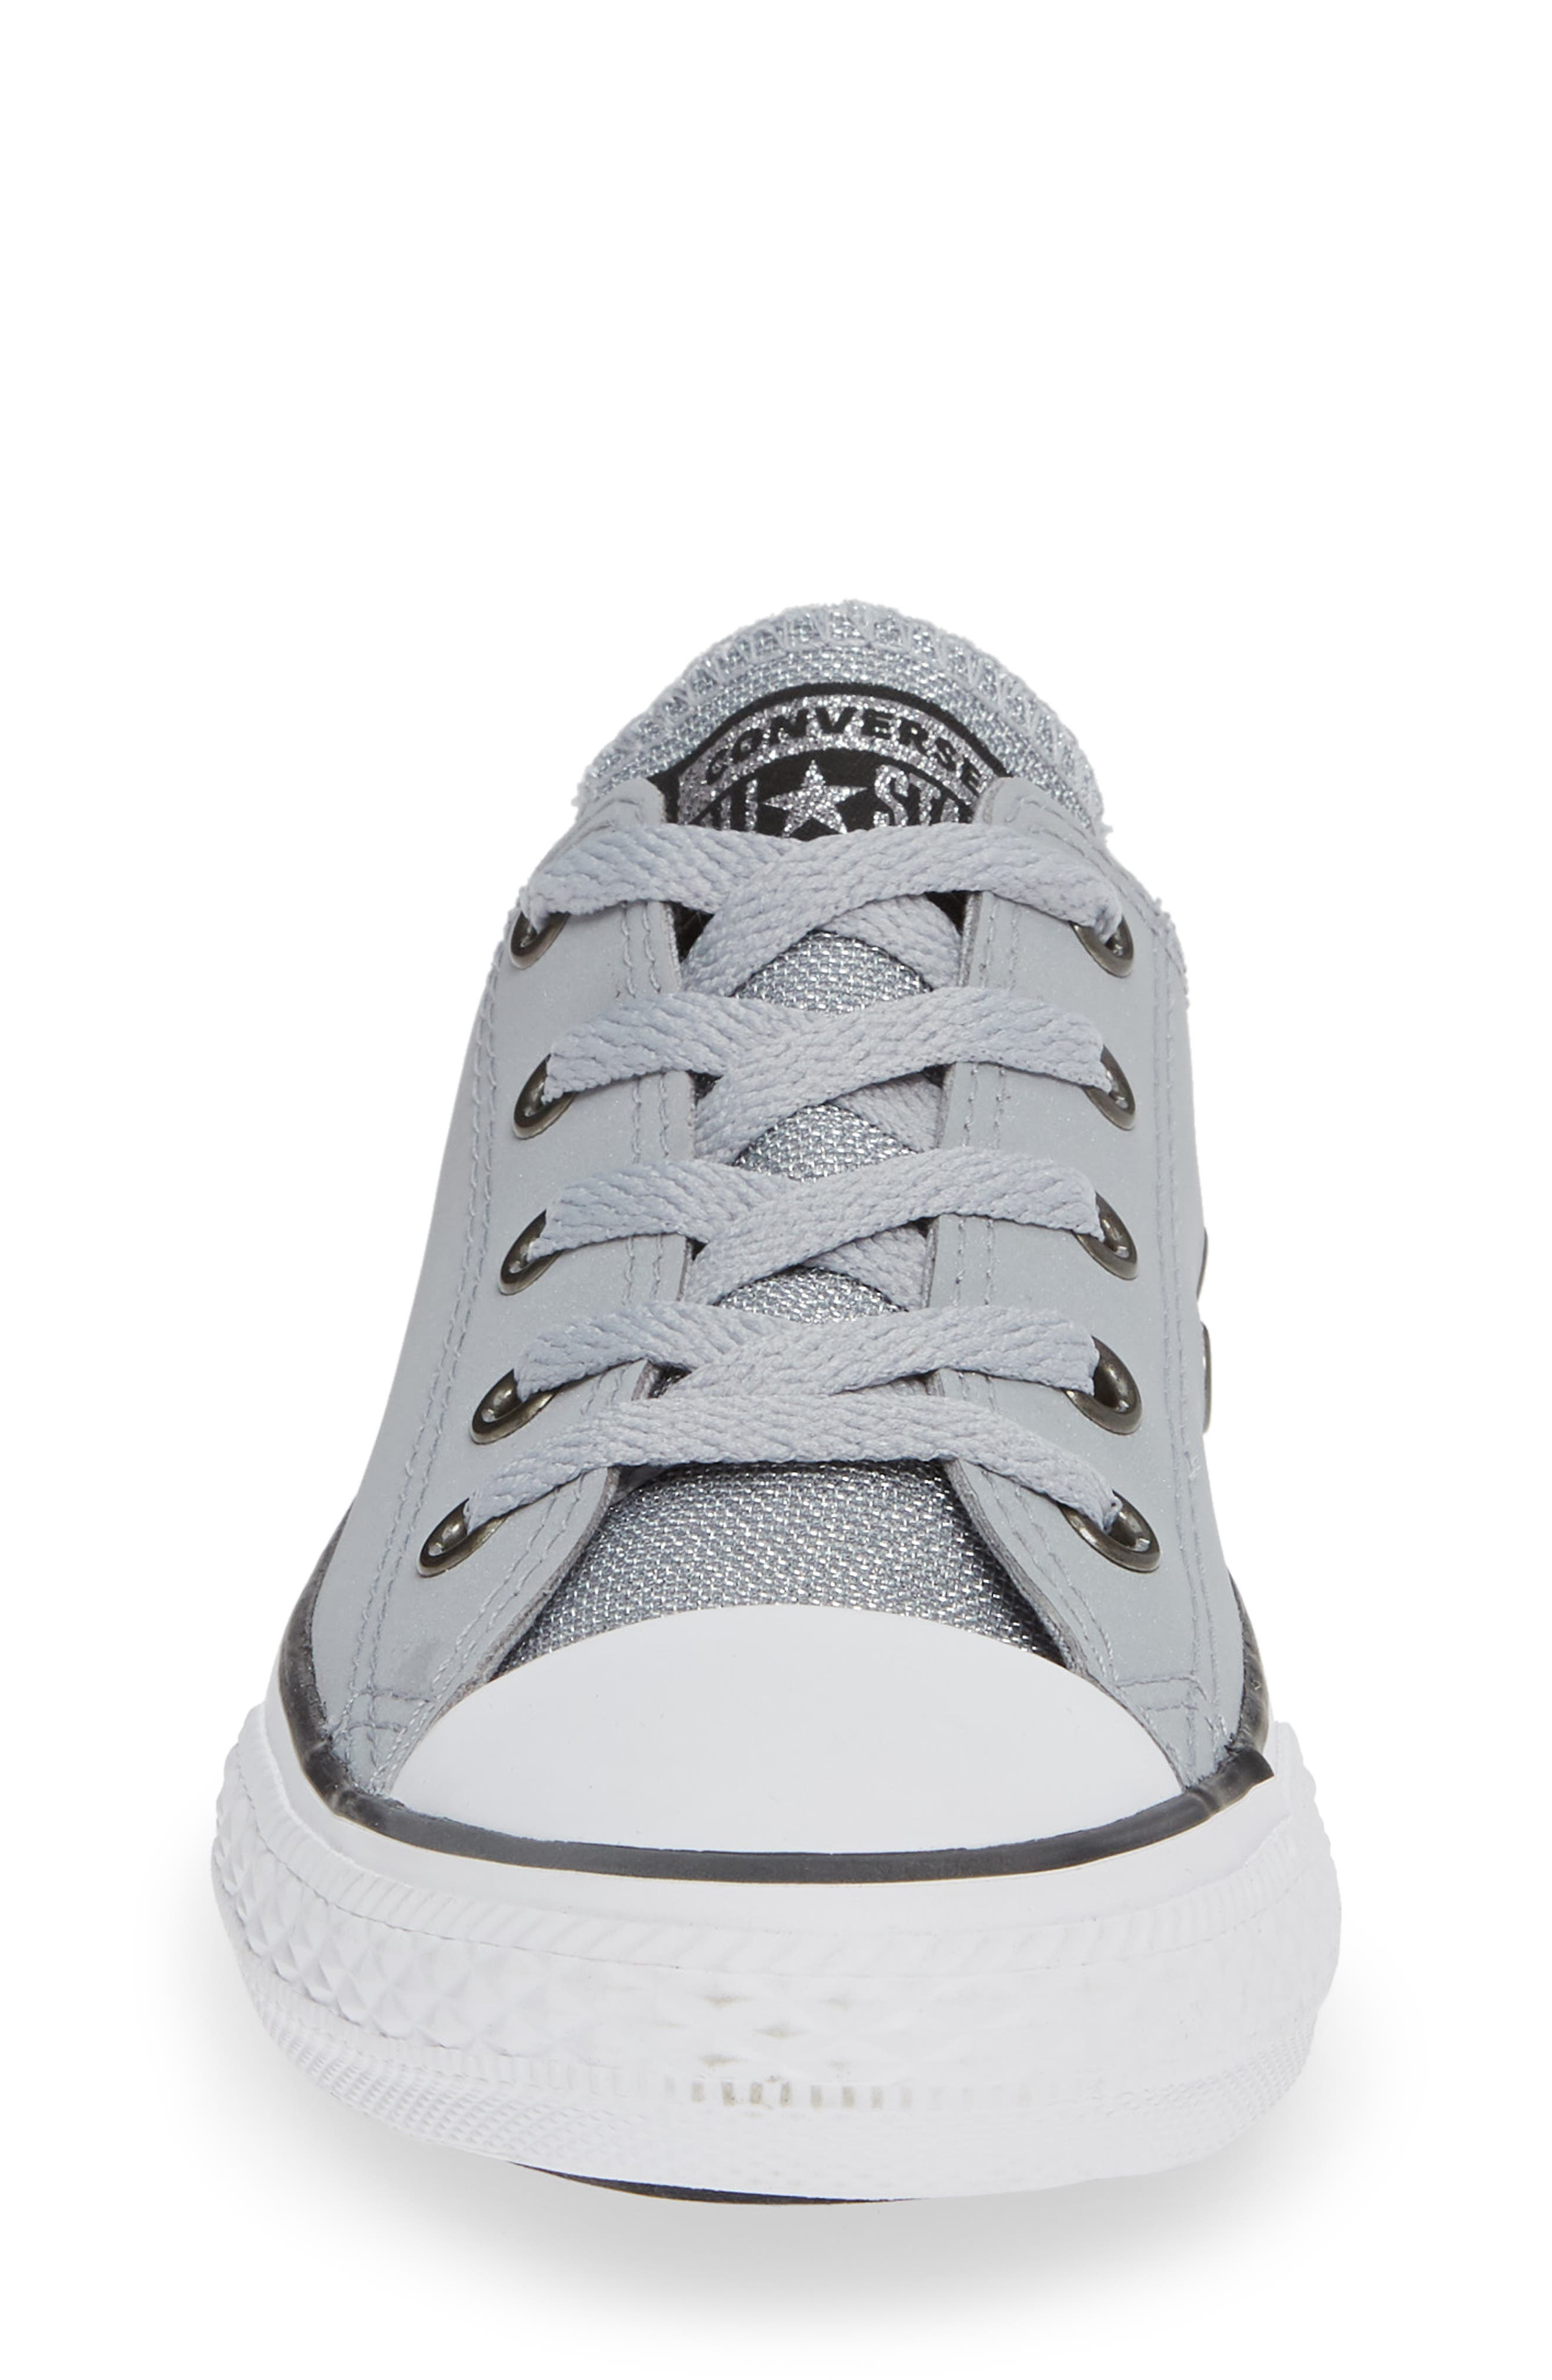 All Star<sup>®</sup> Metallic Low Top Sneaker,                             Alternate thumbnail 4, color,                             WOLF GREY